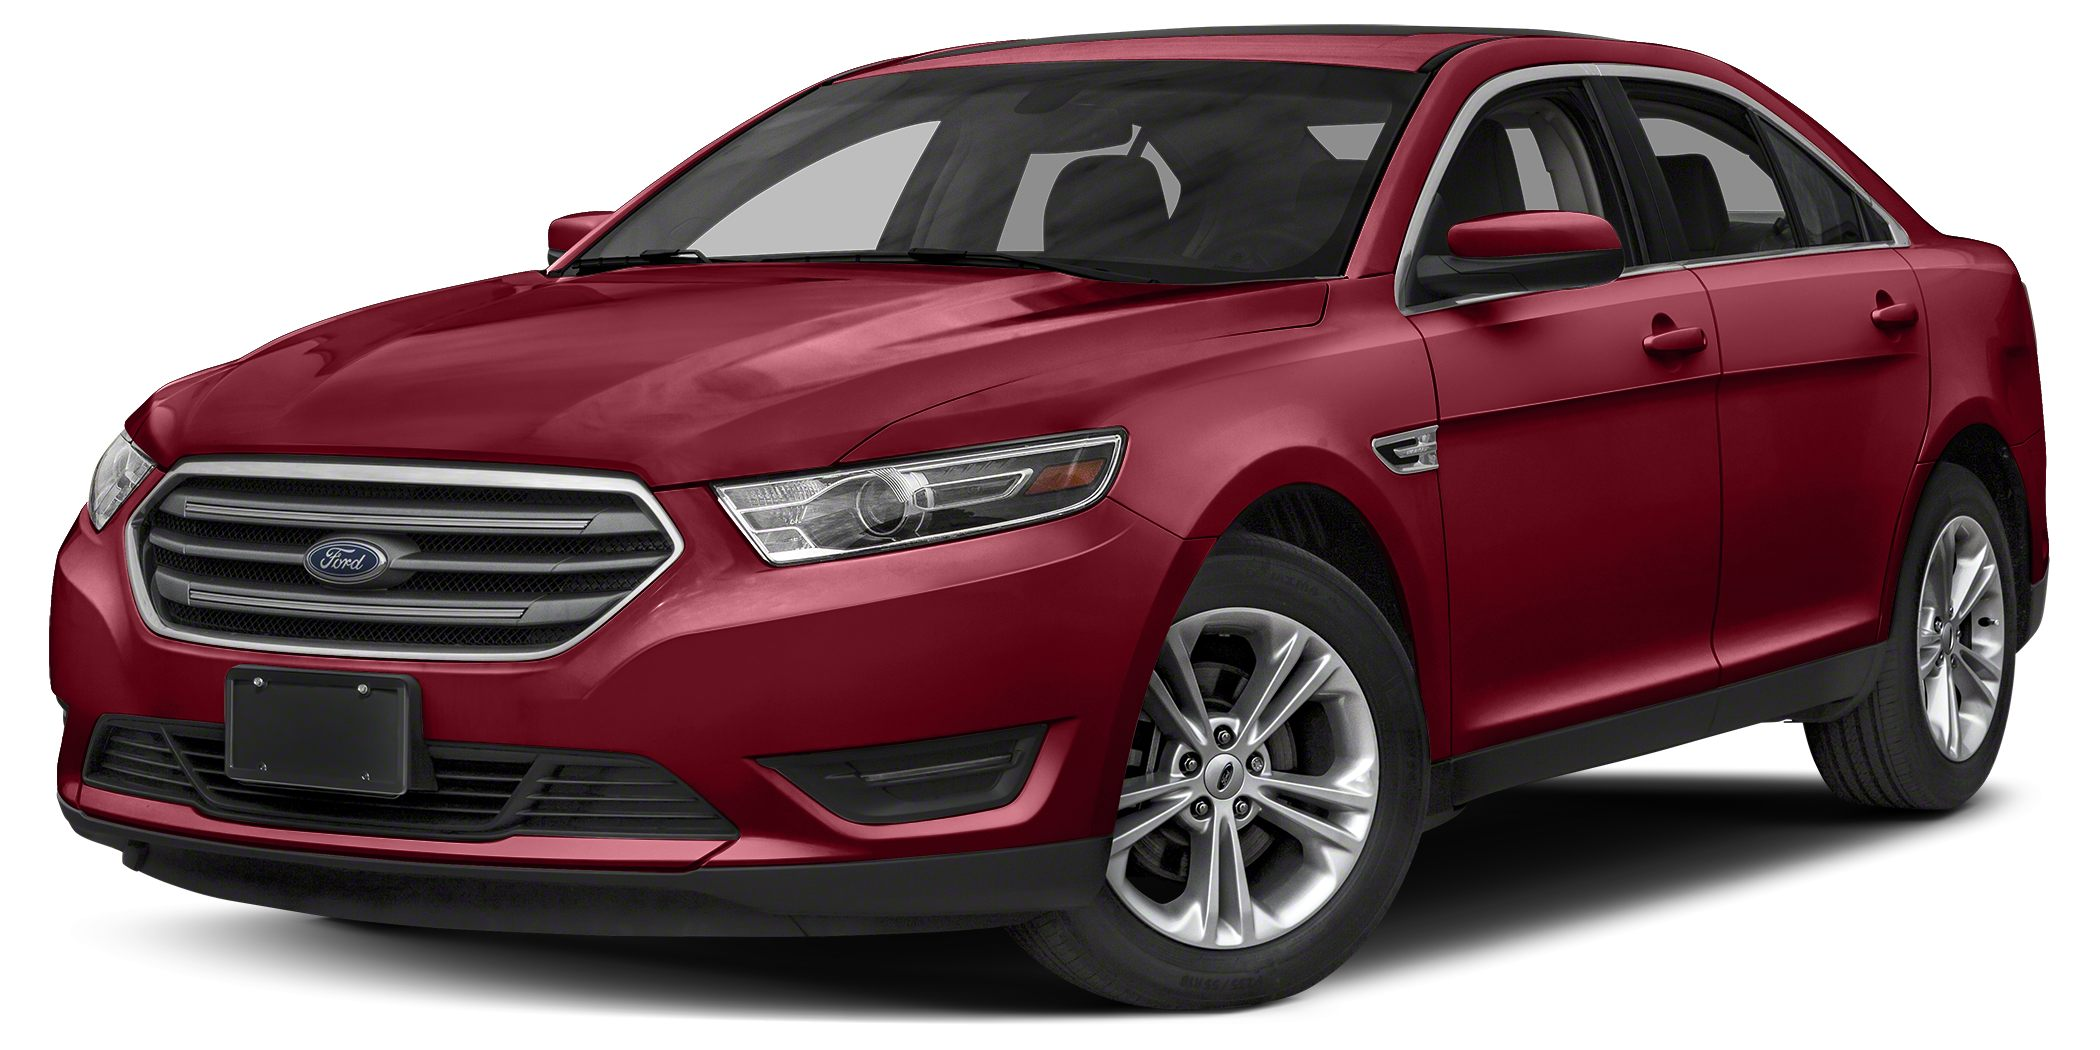 2018 Ford Taurus Limited Miles 0Color Ruby Red Metallic Stock FD20433 VIN 1FAHP2F889JG12278